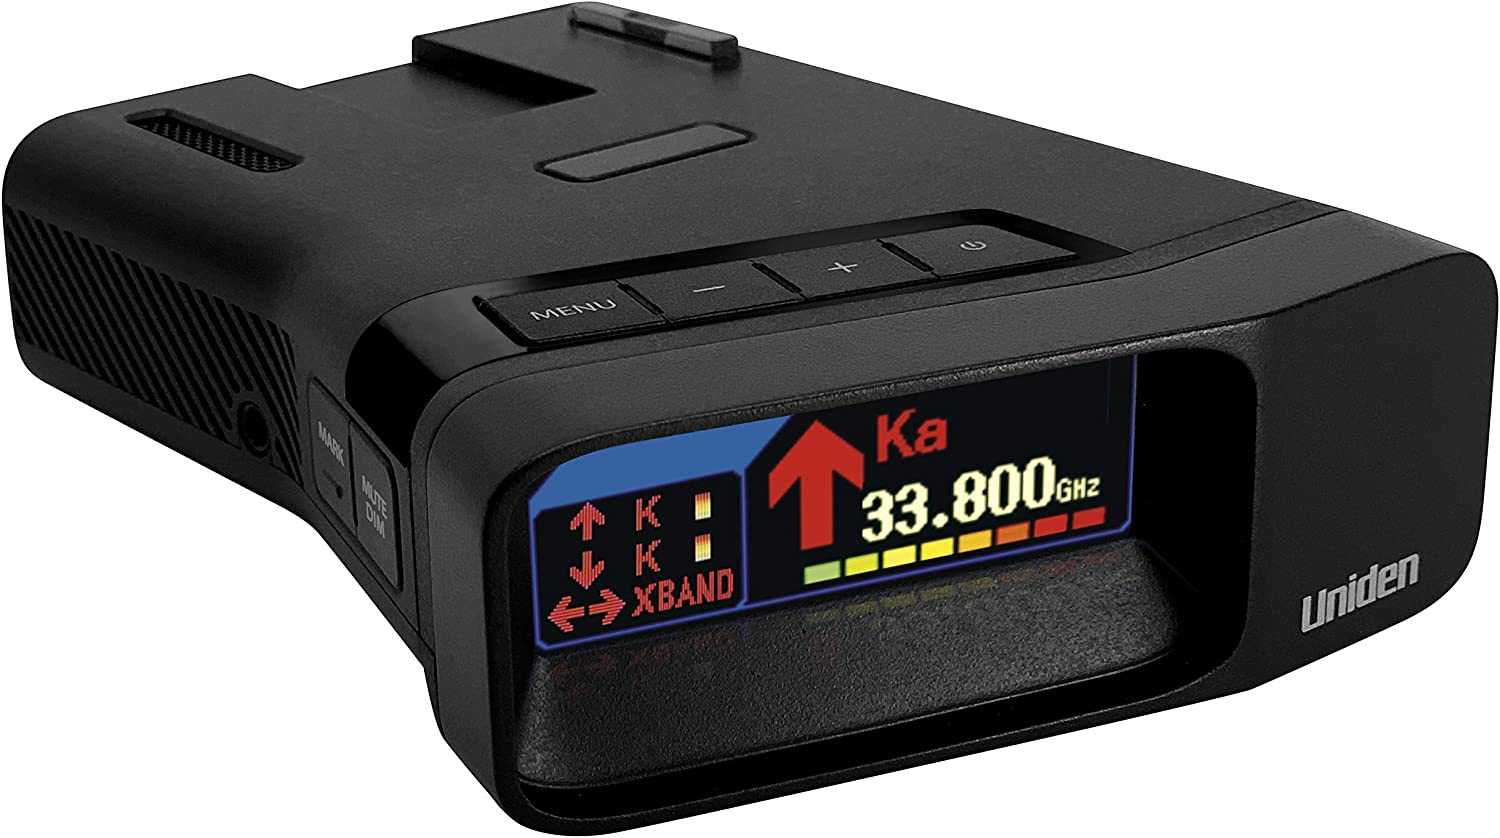 Uniden R7 Extreme Long Range Laser//Radar Detector Dual-Antennas Front /& Rear W//Directional Arrows OLED Display Red Light Camera Speed Camera Alerts Voice Alerts Built-in GPS W//Real-Time Alerts